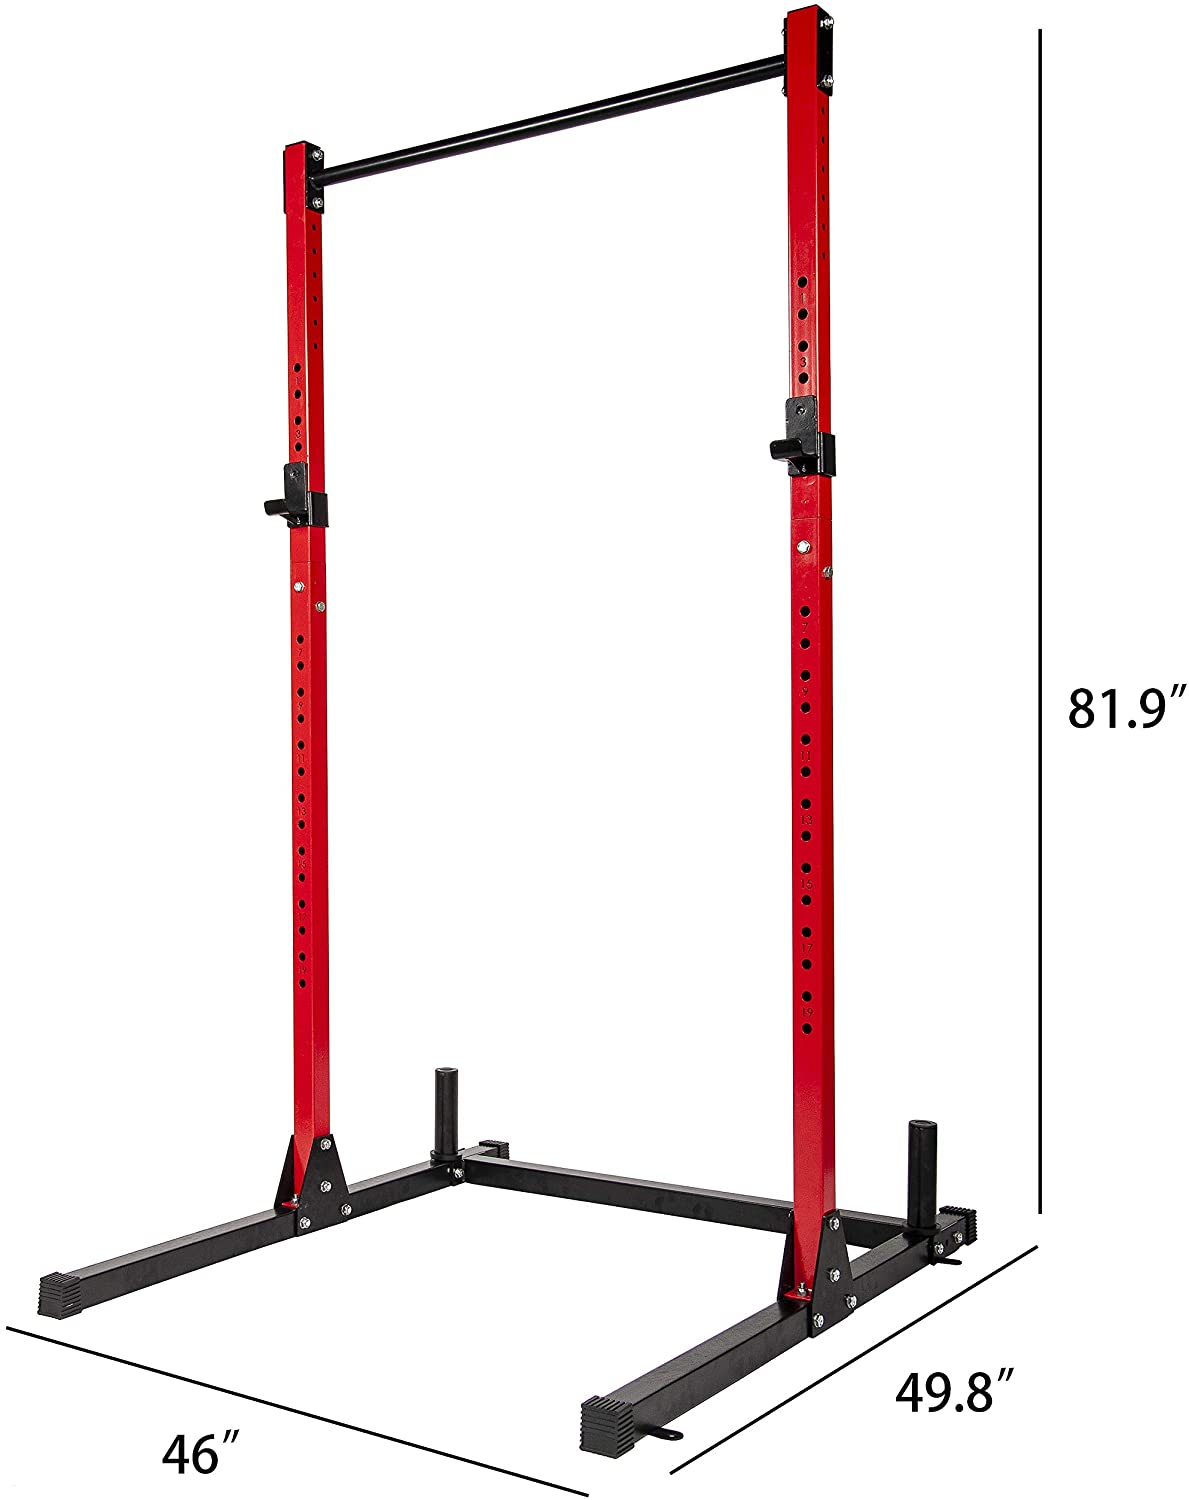 HulkFit Multi-Function Adjustable Power Rack Exercise Squat Stand with J-Hooks and Other Accessories,/Multiple Versions